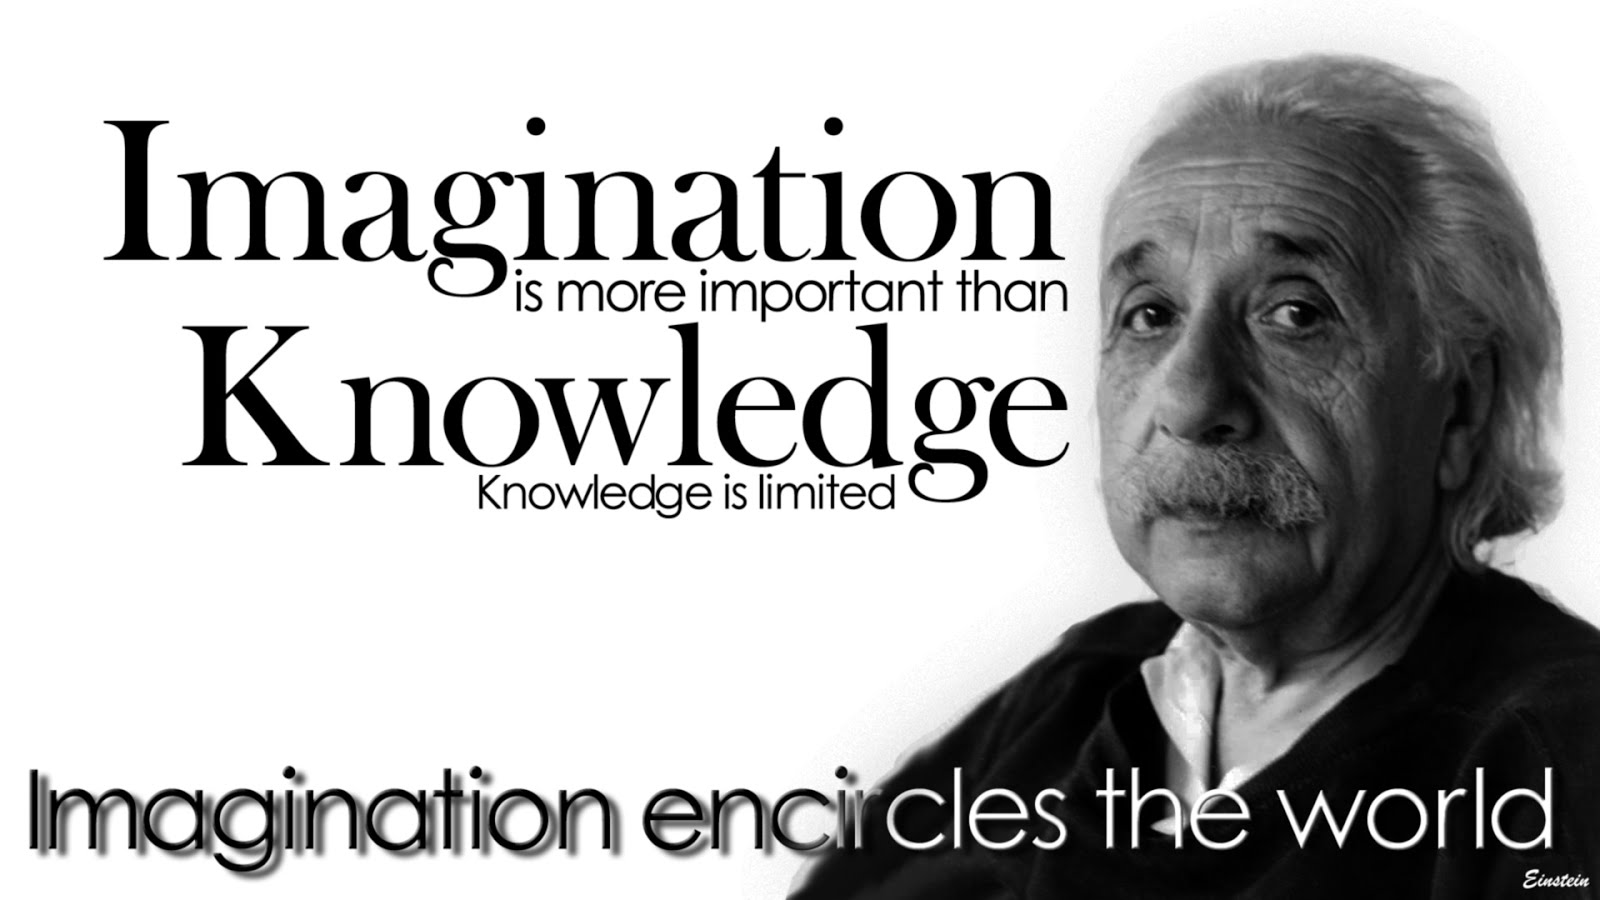 So True, Mr. Einstein